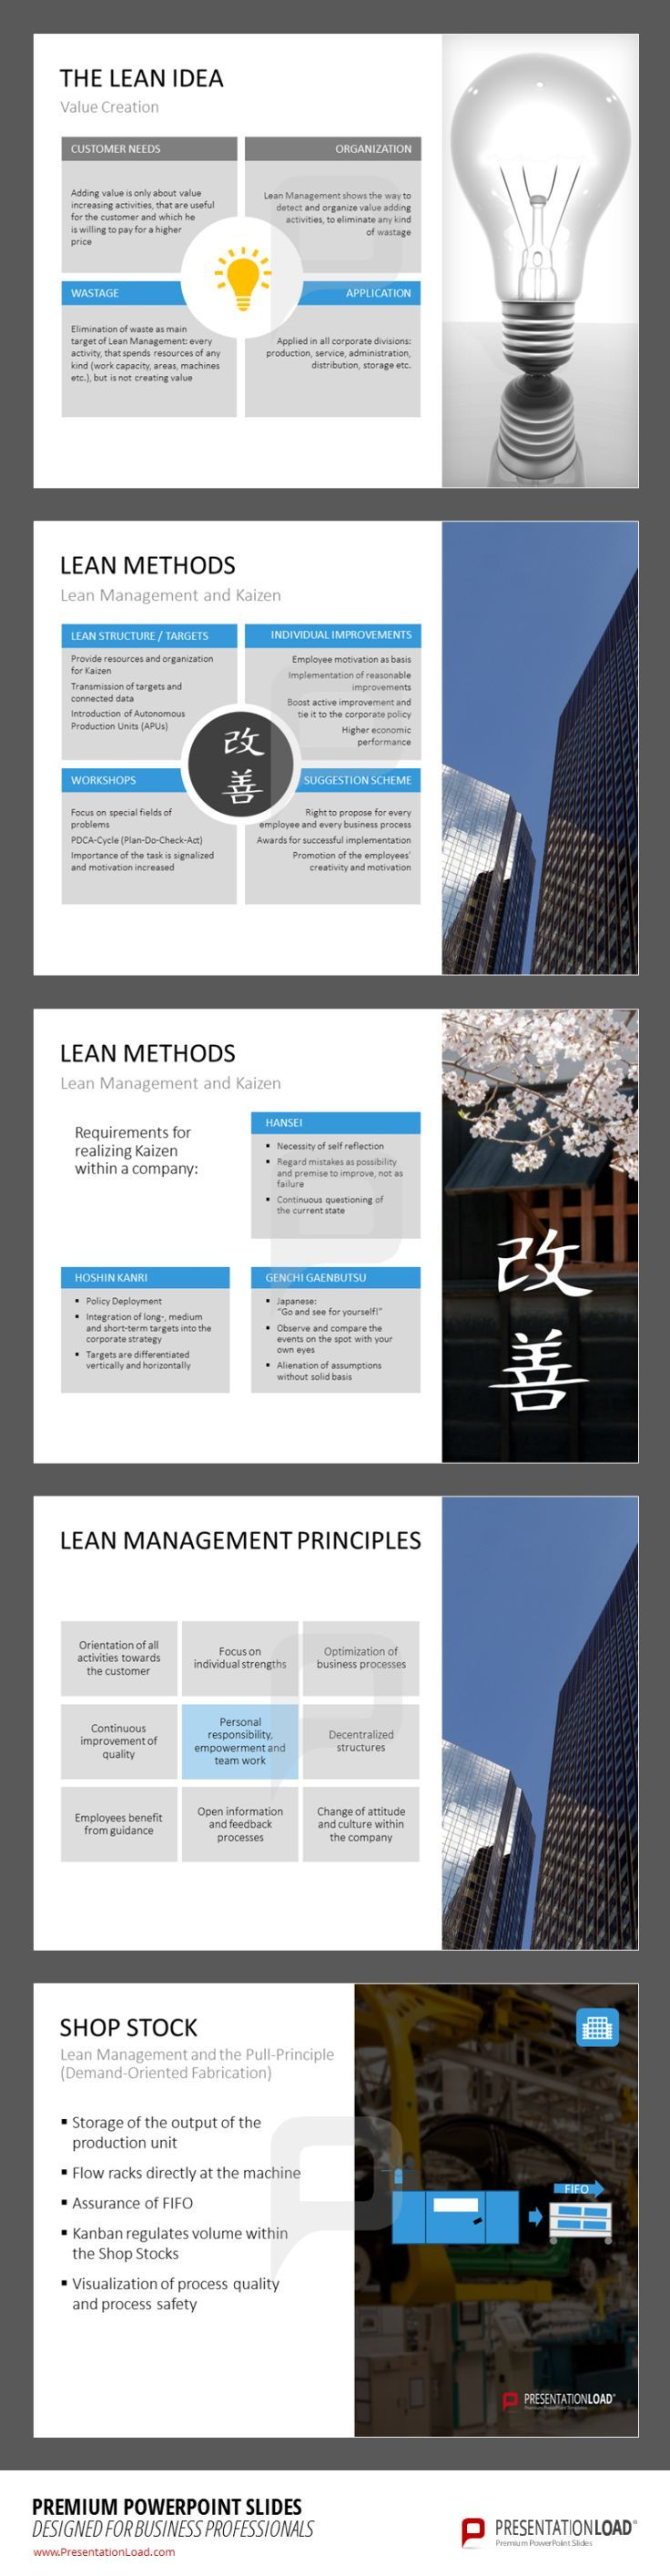 The Lean Idea is to create value without wastage. Get detailed descriptions of concepts for optimizing your production processes and benefit from our Lean Management templates. Download them at http://www.presentationload.com/lean-management.html